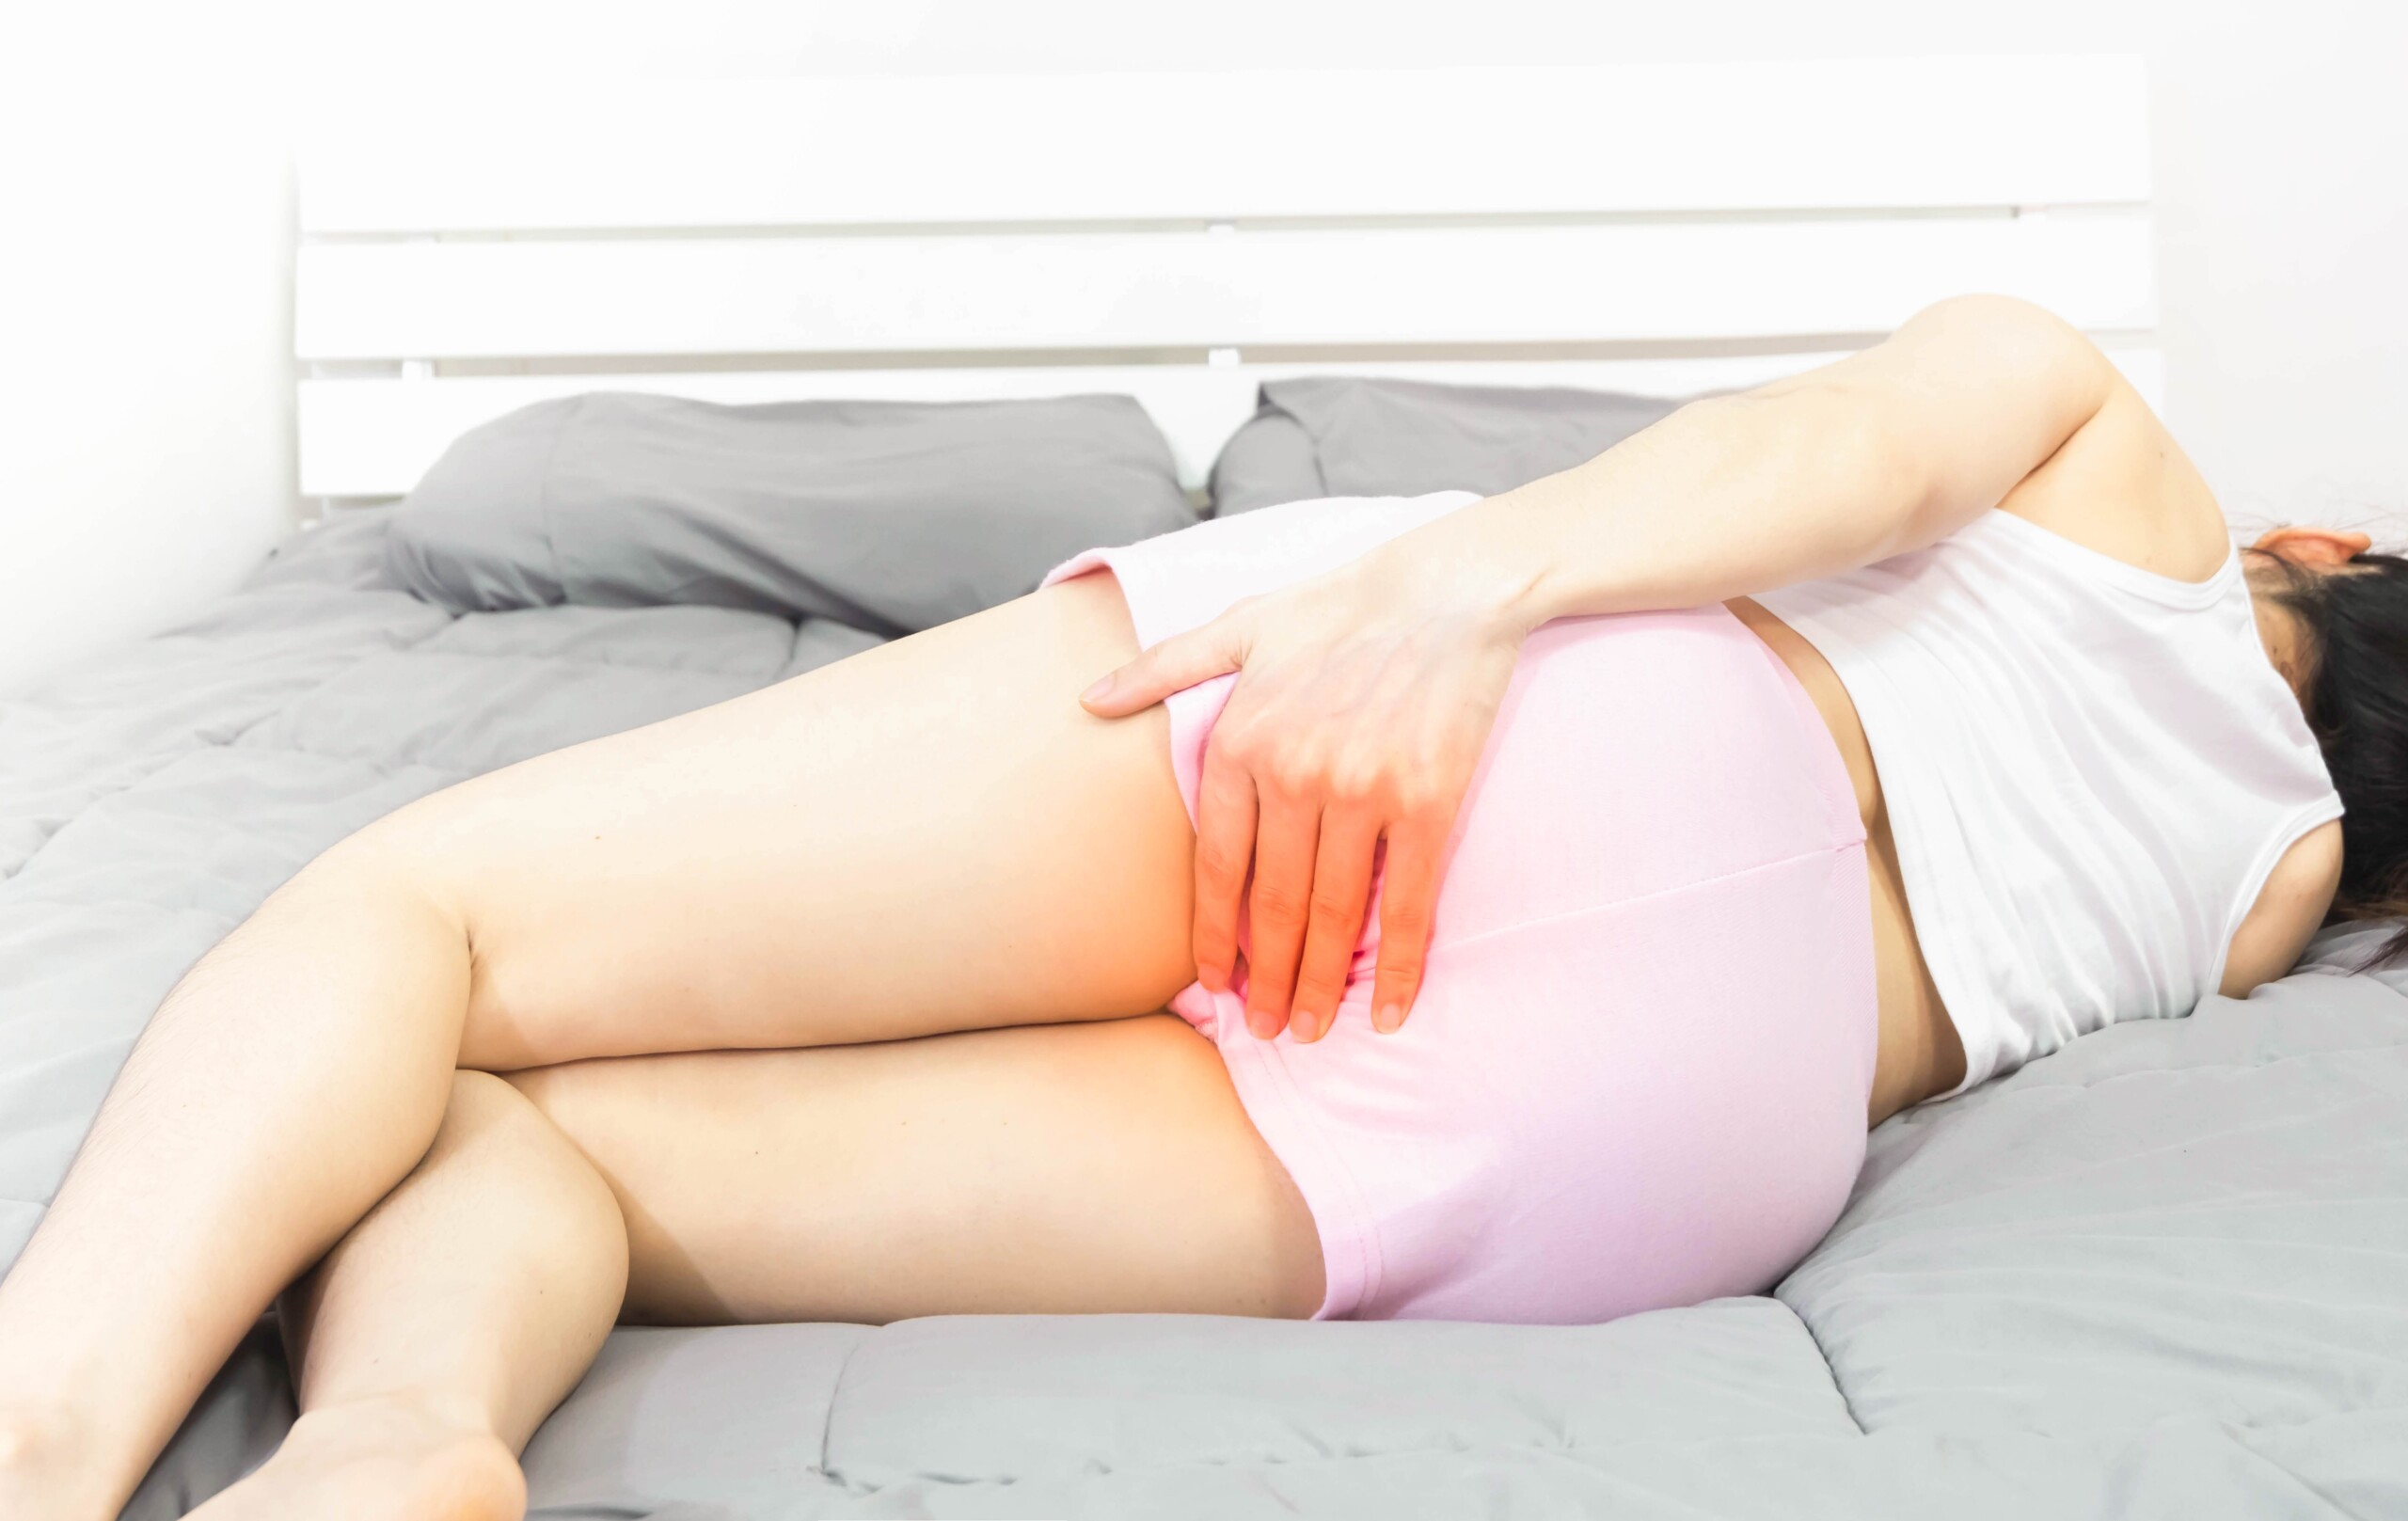 Anus Wax Buildup: Causes and Solutions